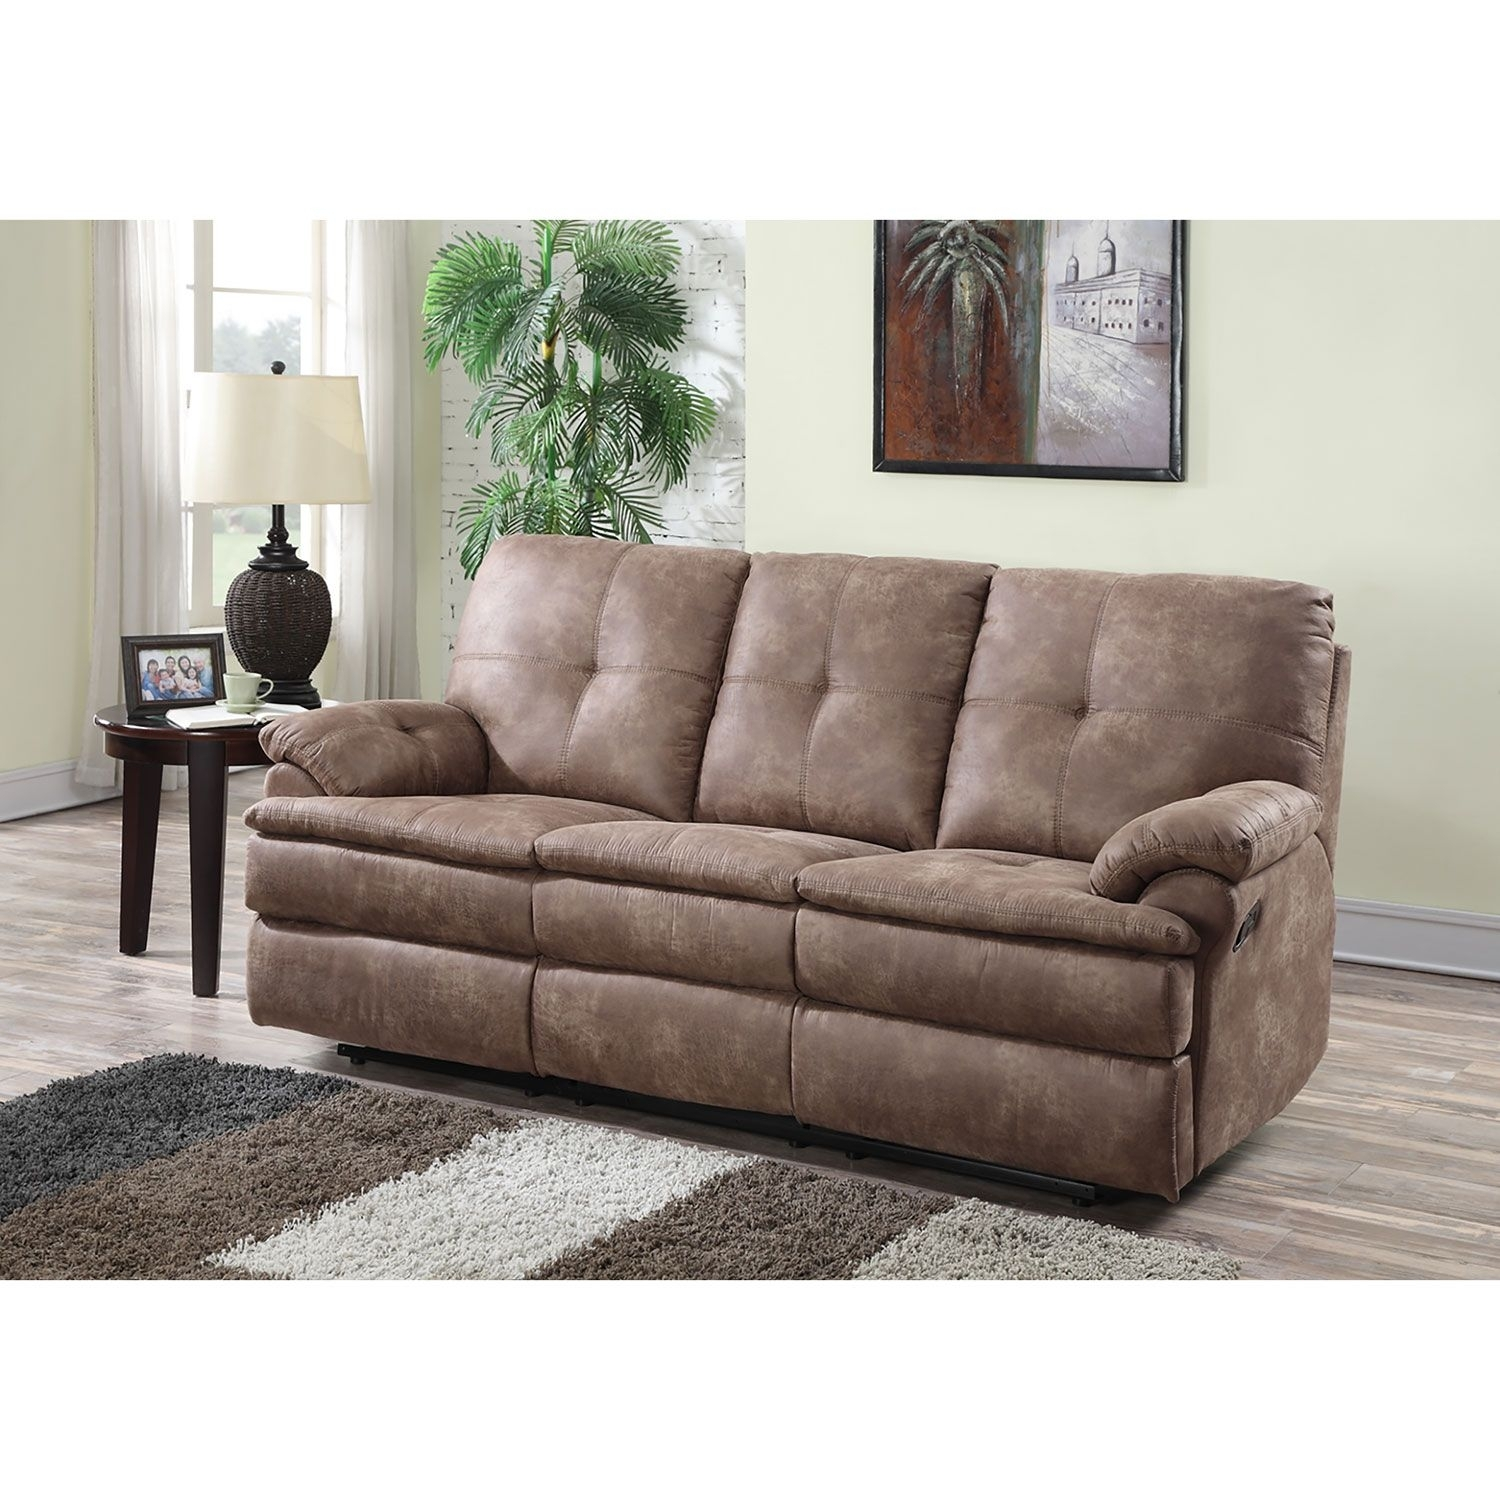 Buck Fabric Reclining Sofa - Sam's Club | Home Furniture Ideas for Sectional Sofas At Sam's Club (Image 4 of 15)